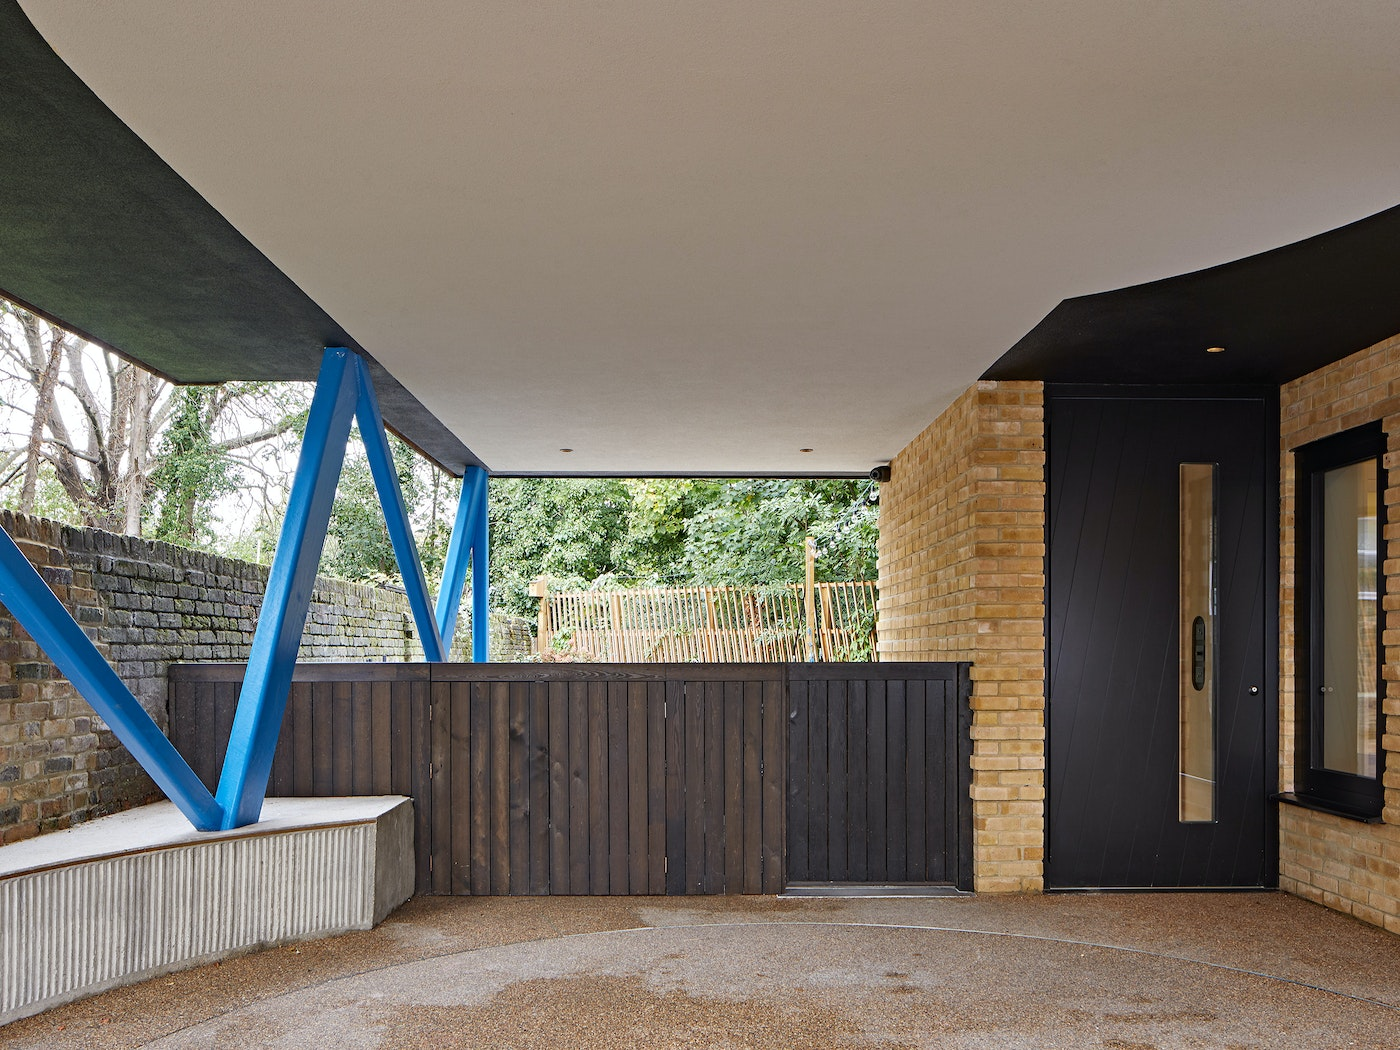 The covered porch space is accented by the attention grabbing blue legs holding the upper level